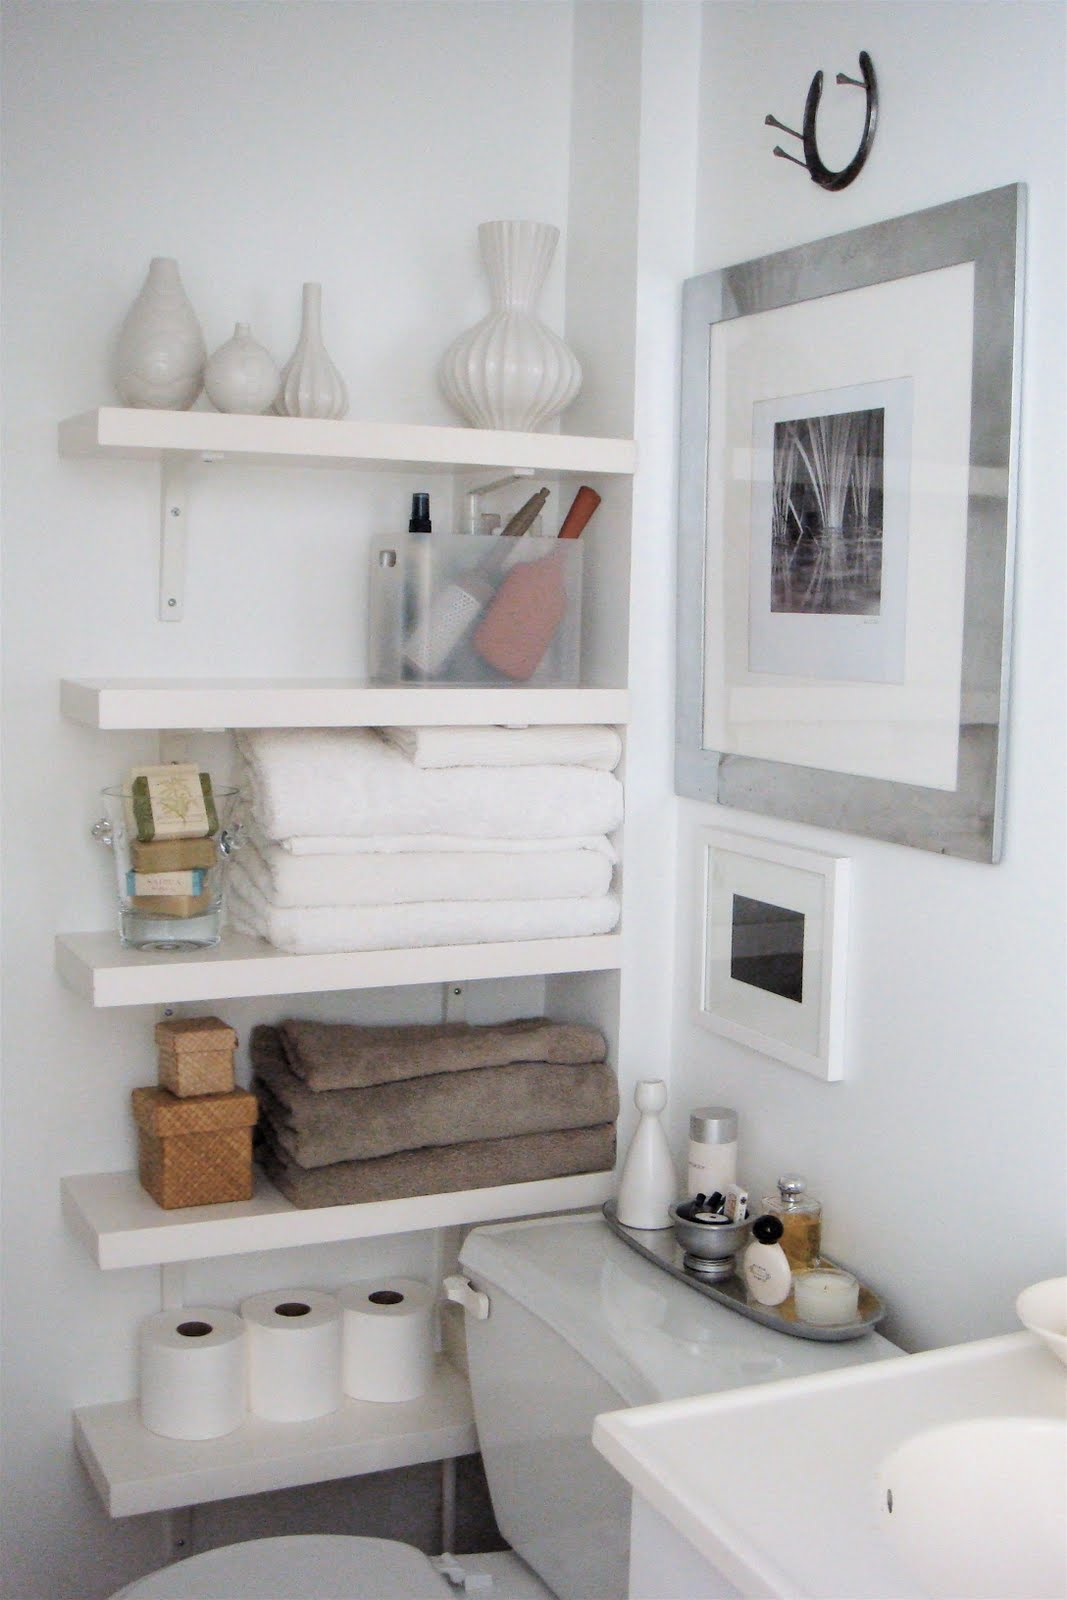 Operation organization professional organizer peachtree for Little bathroom